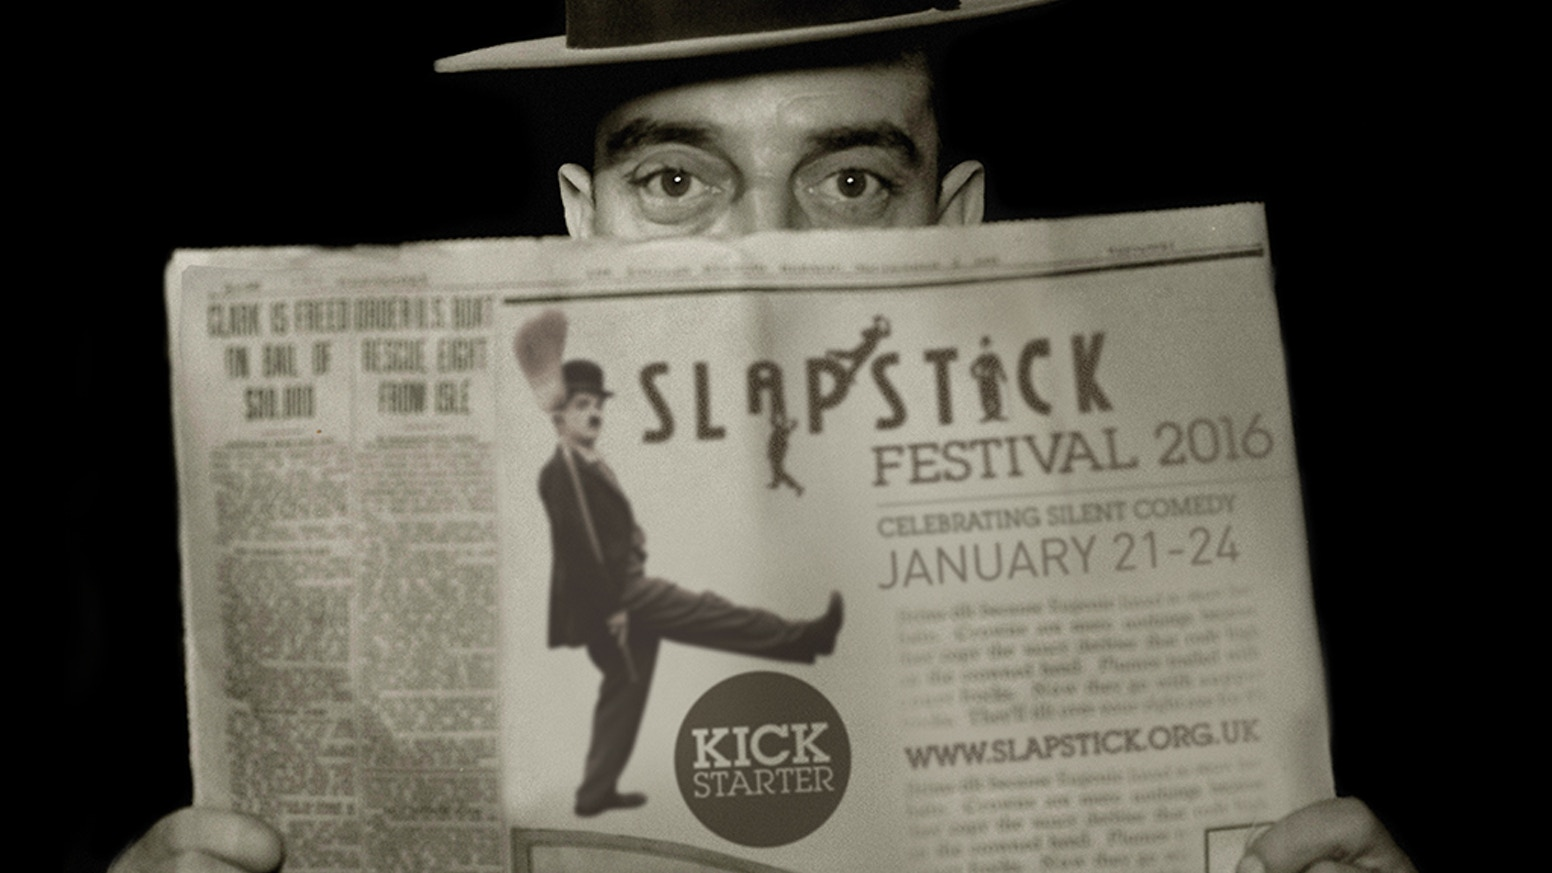 Thank you for all your support - now come to the biggest Slapstick Festival 2016 20 - 25th Jan